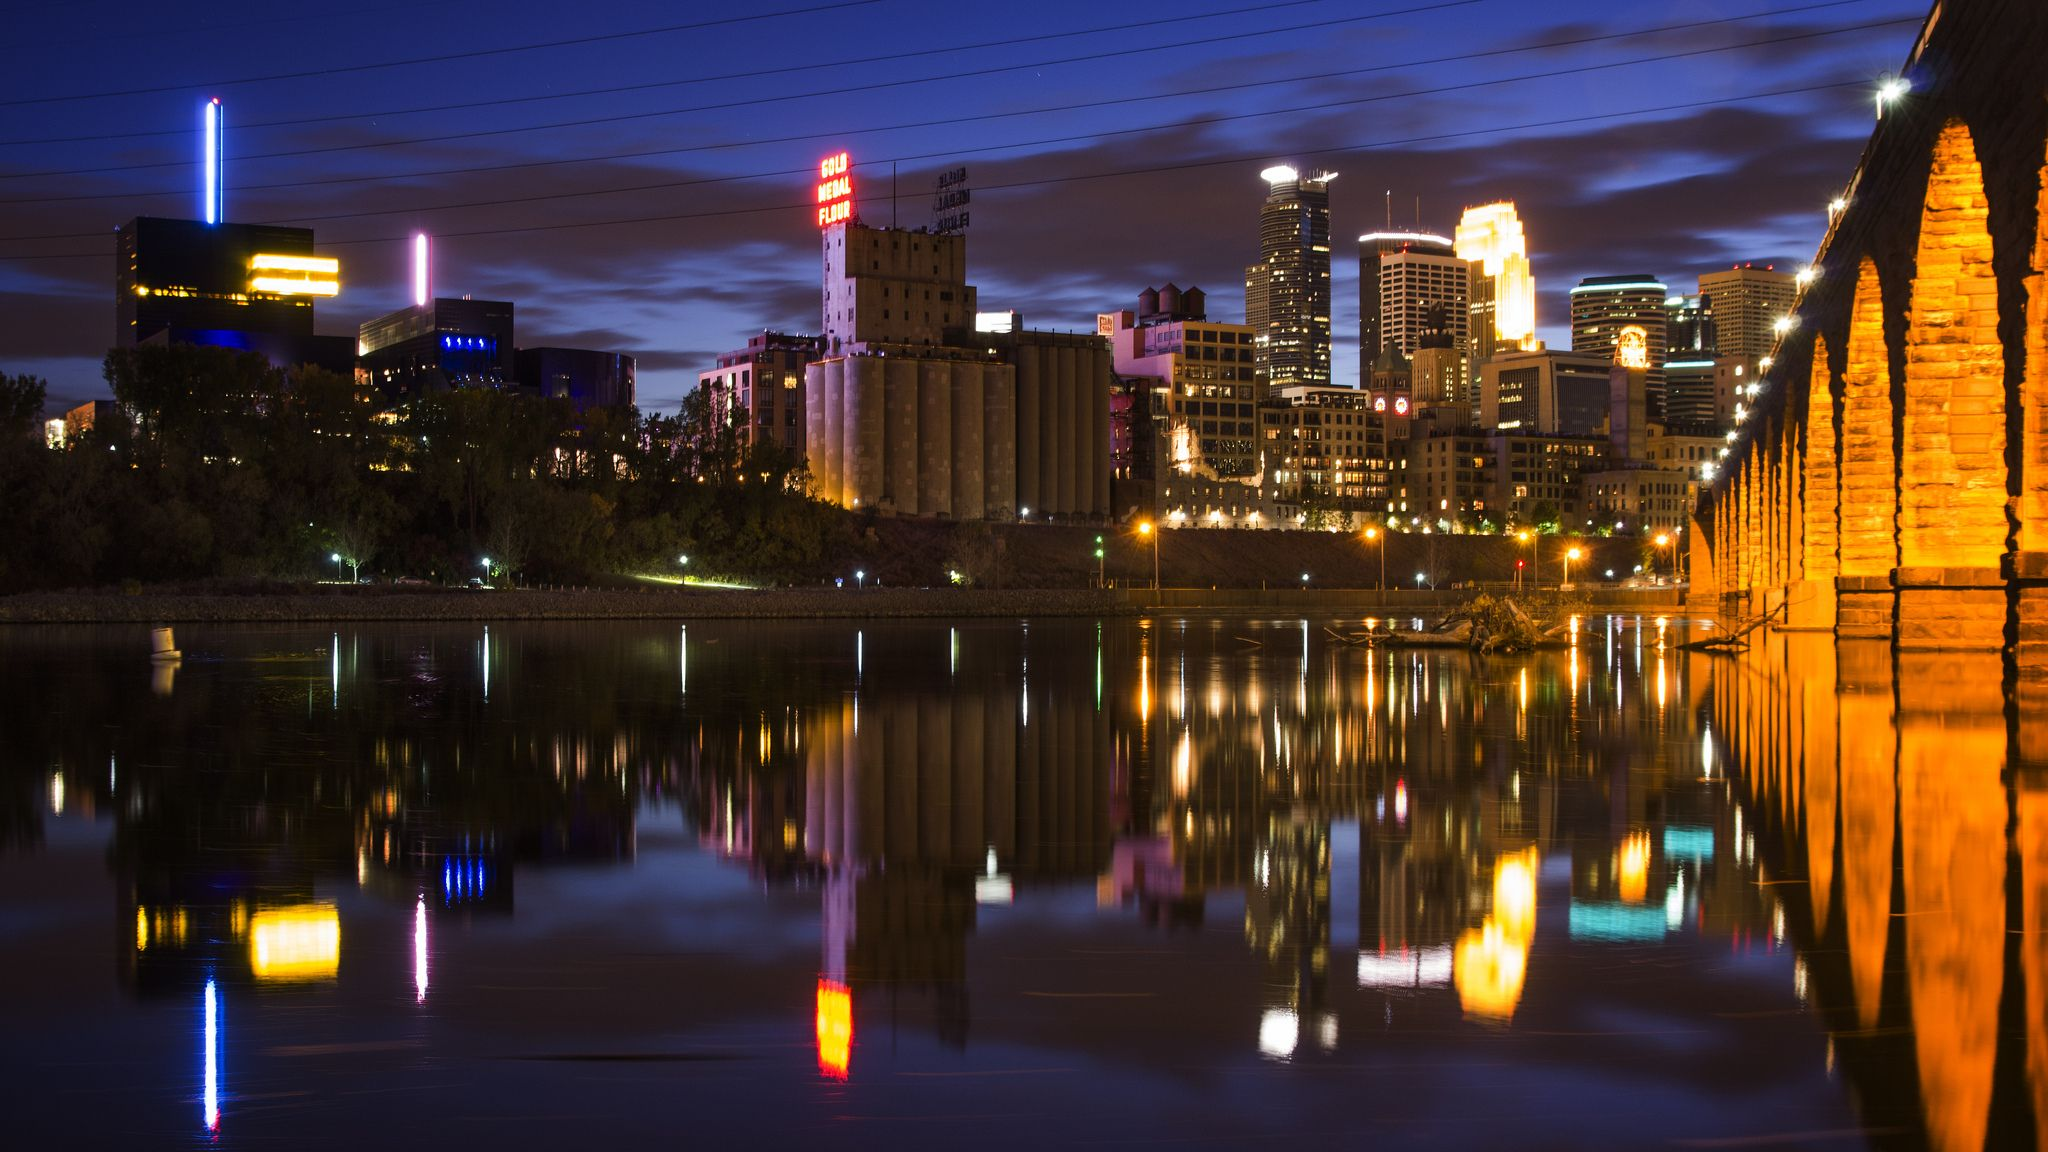 Downtown Minneapolis At Night And The Stone Arch Bridge Over The